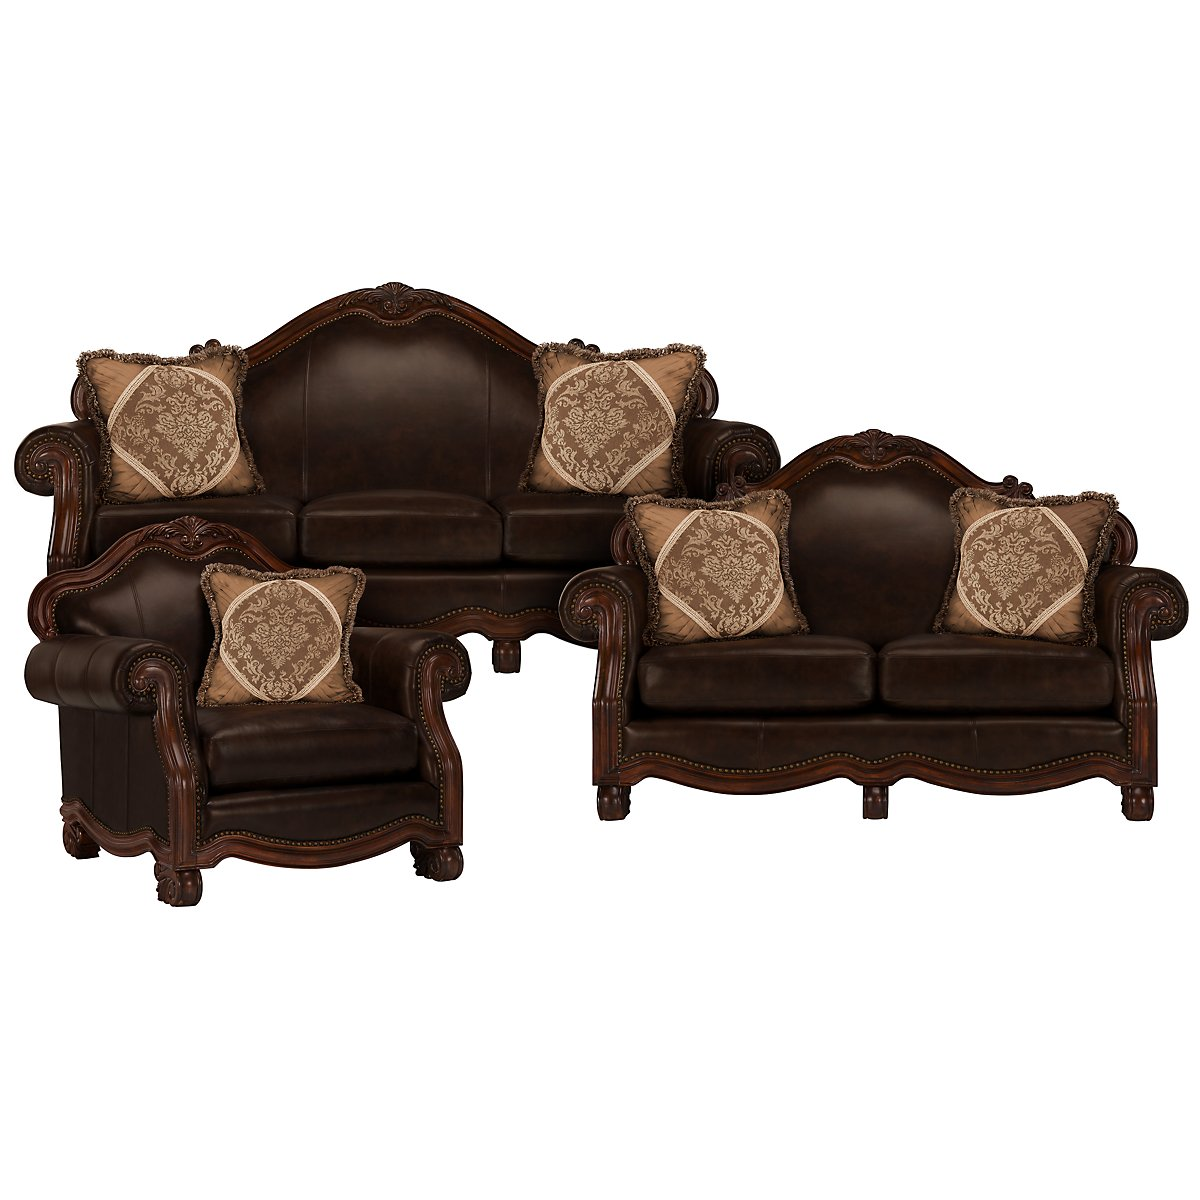 Regal Dark Tone Leather Living Room